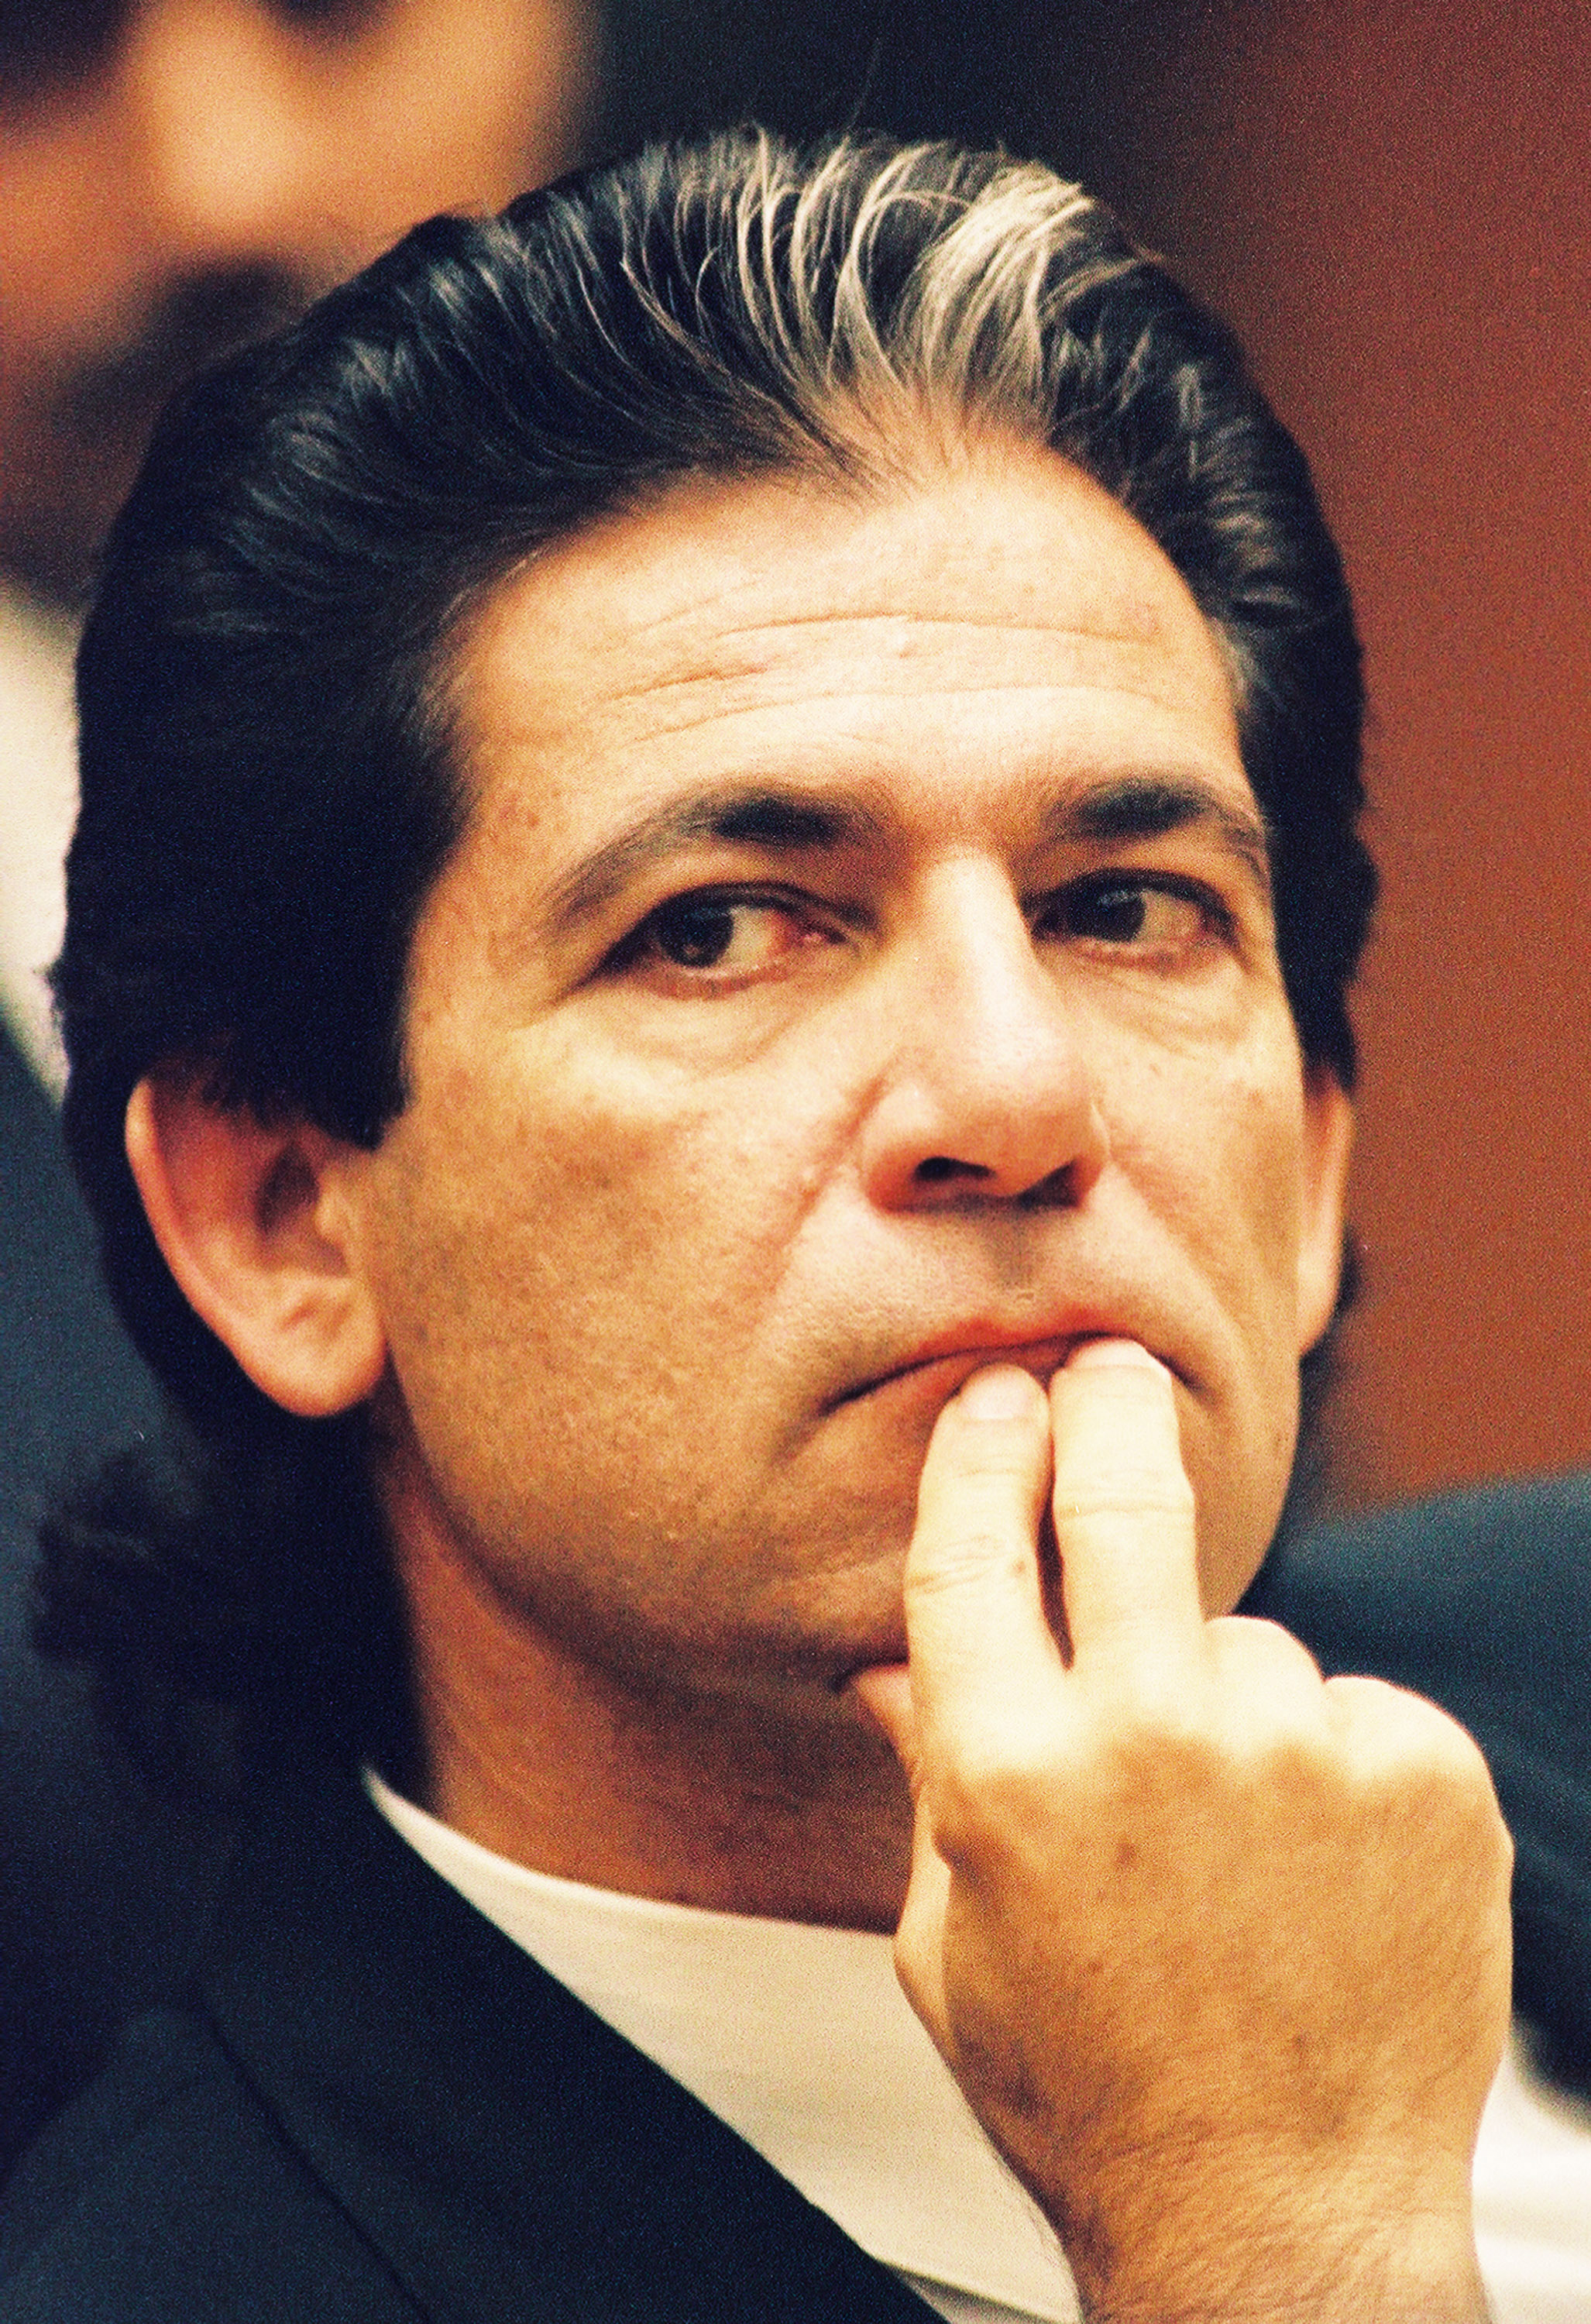 Preliminary Hearing Following the Murders of O.J. Simpson's Ex-Wife and Her Friend